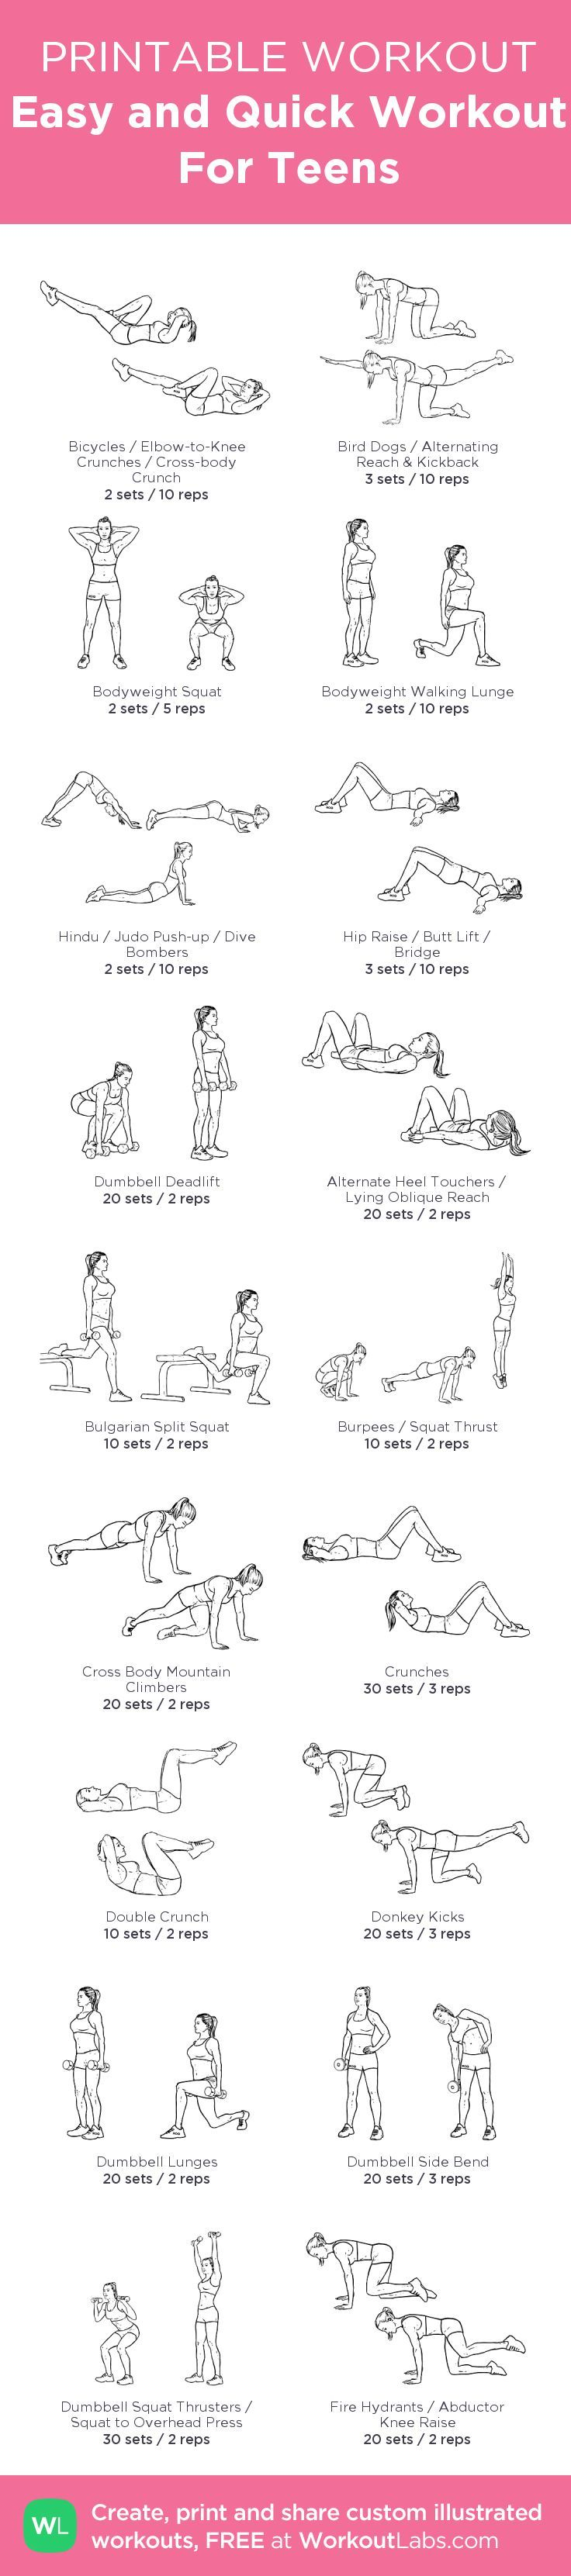 Easy and Quick Workout For Teens my custom workout